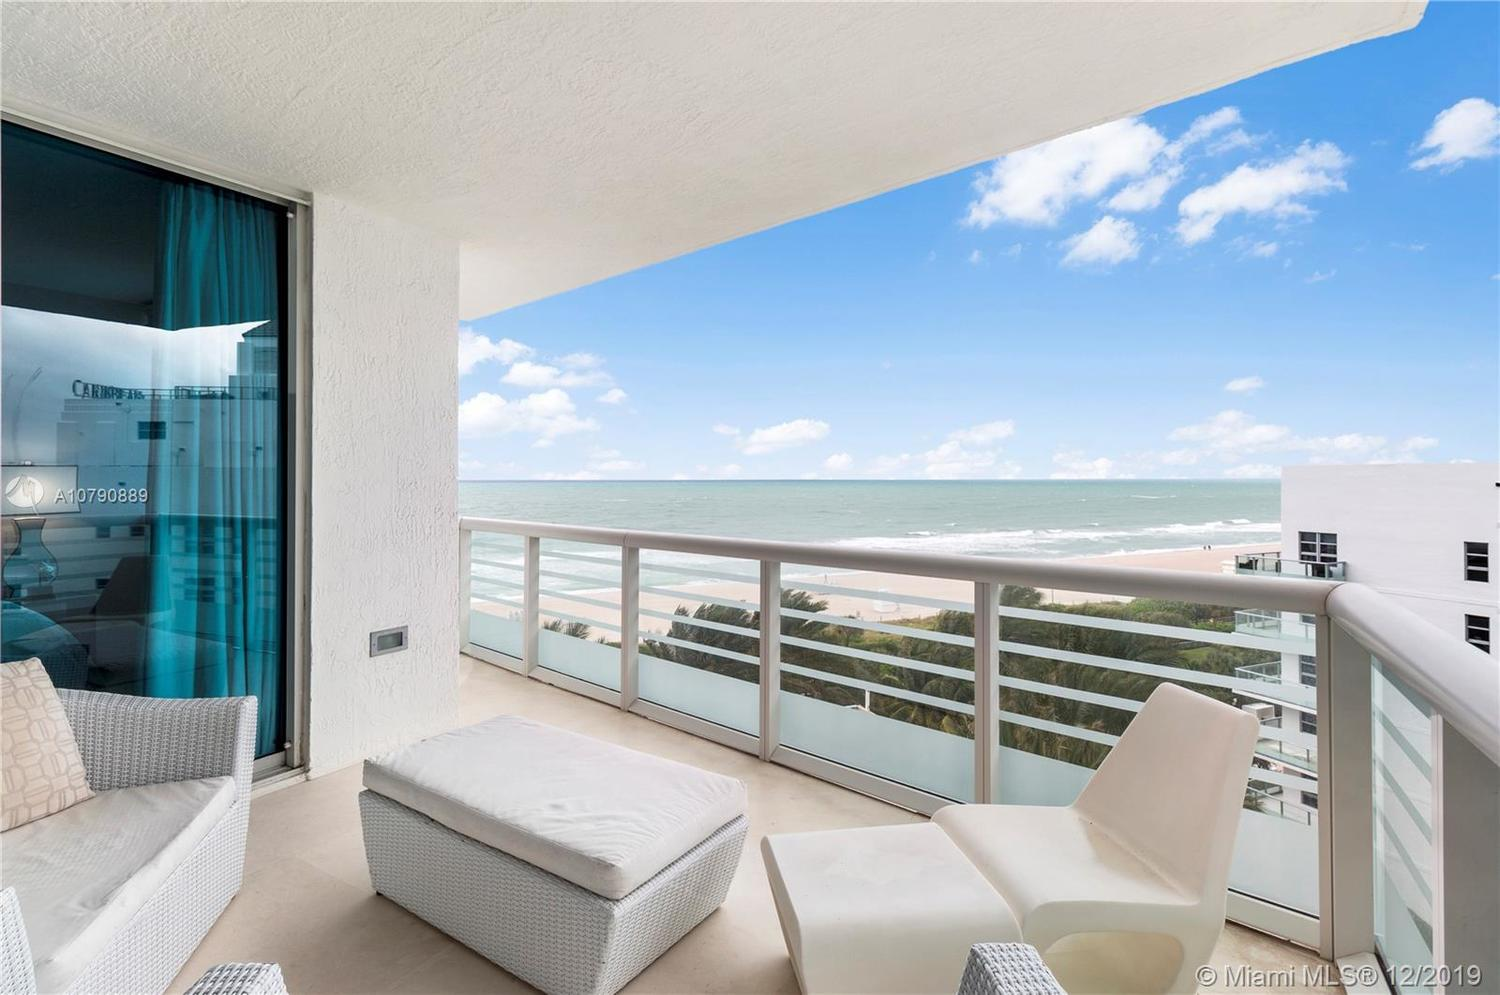 3801 Collins Avenue, Unit 803 Miami Beach, FL 33140